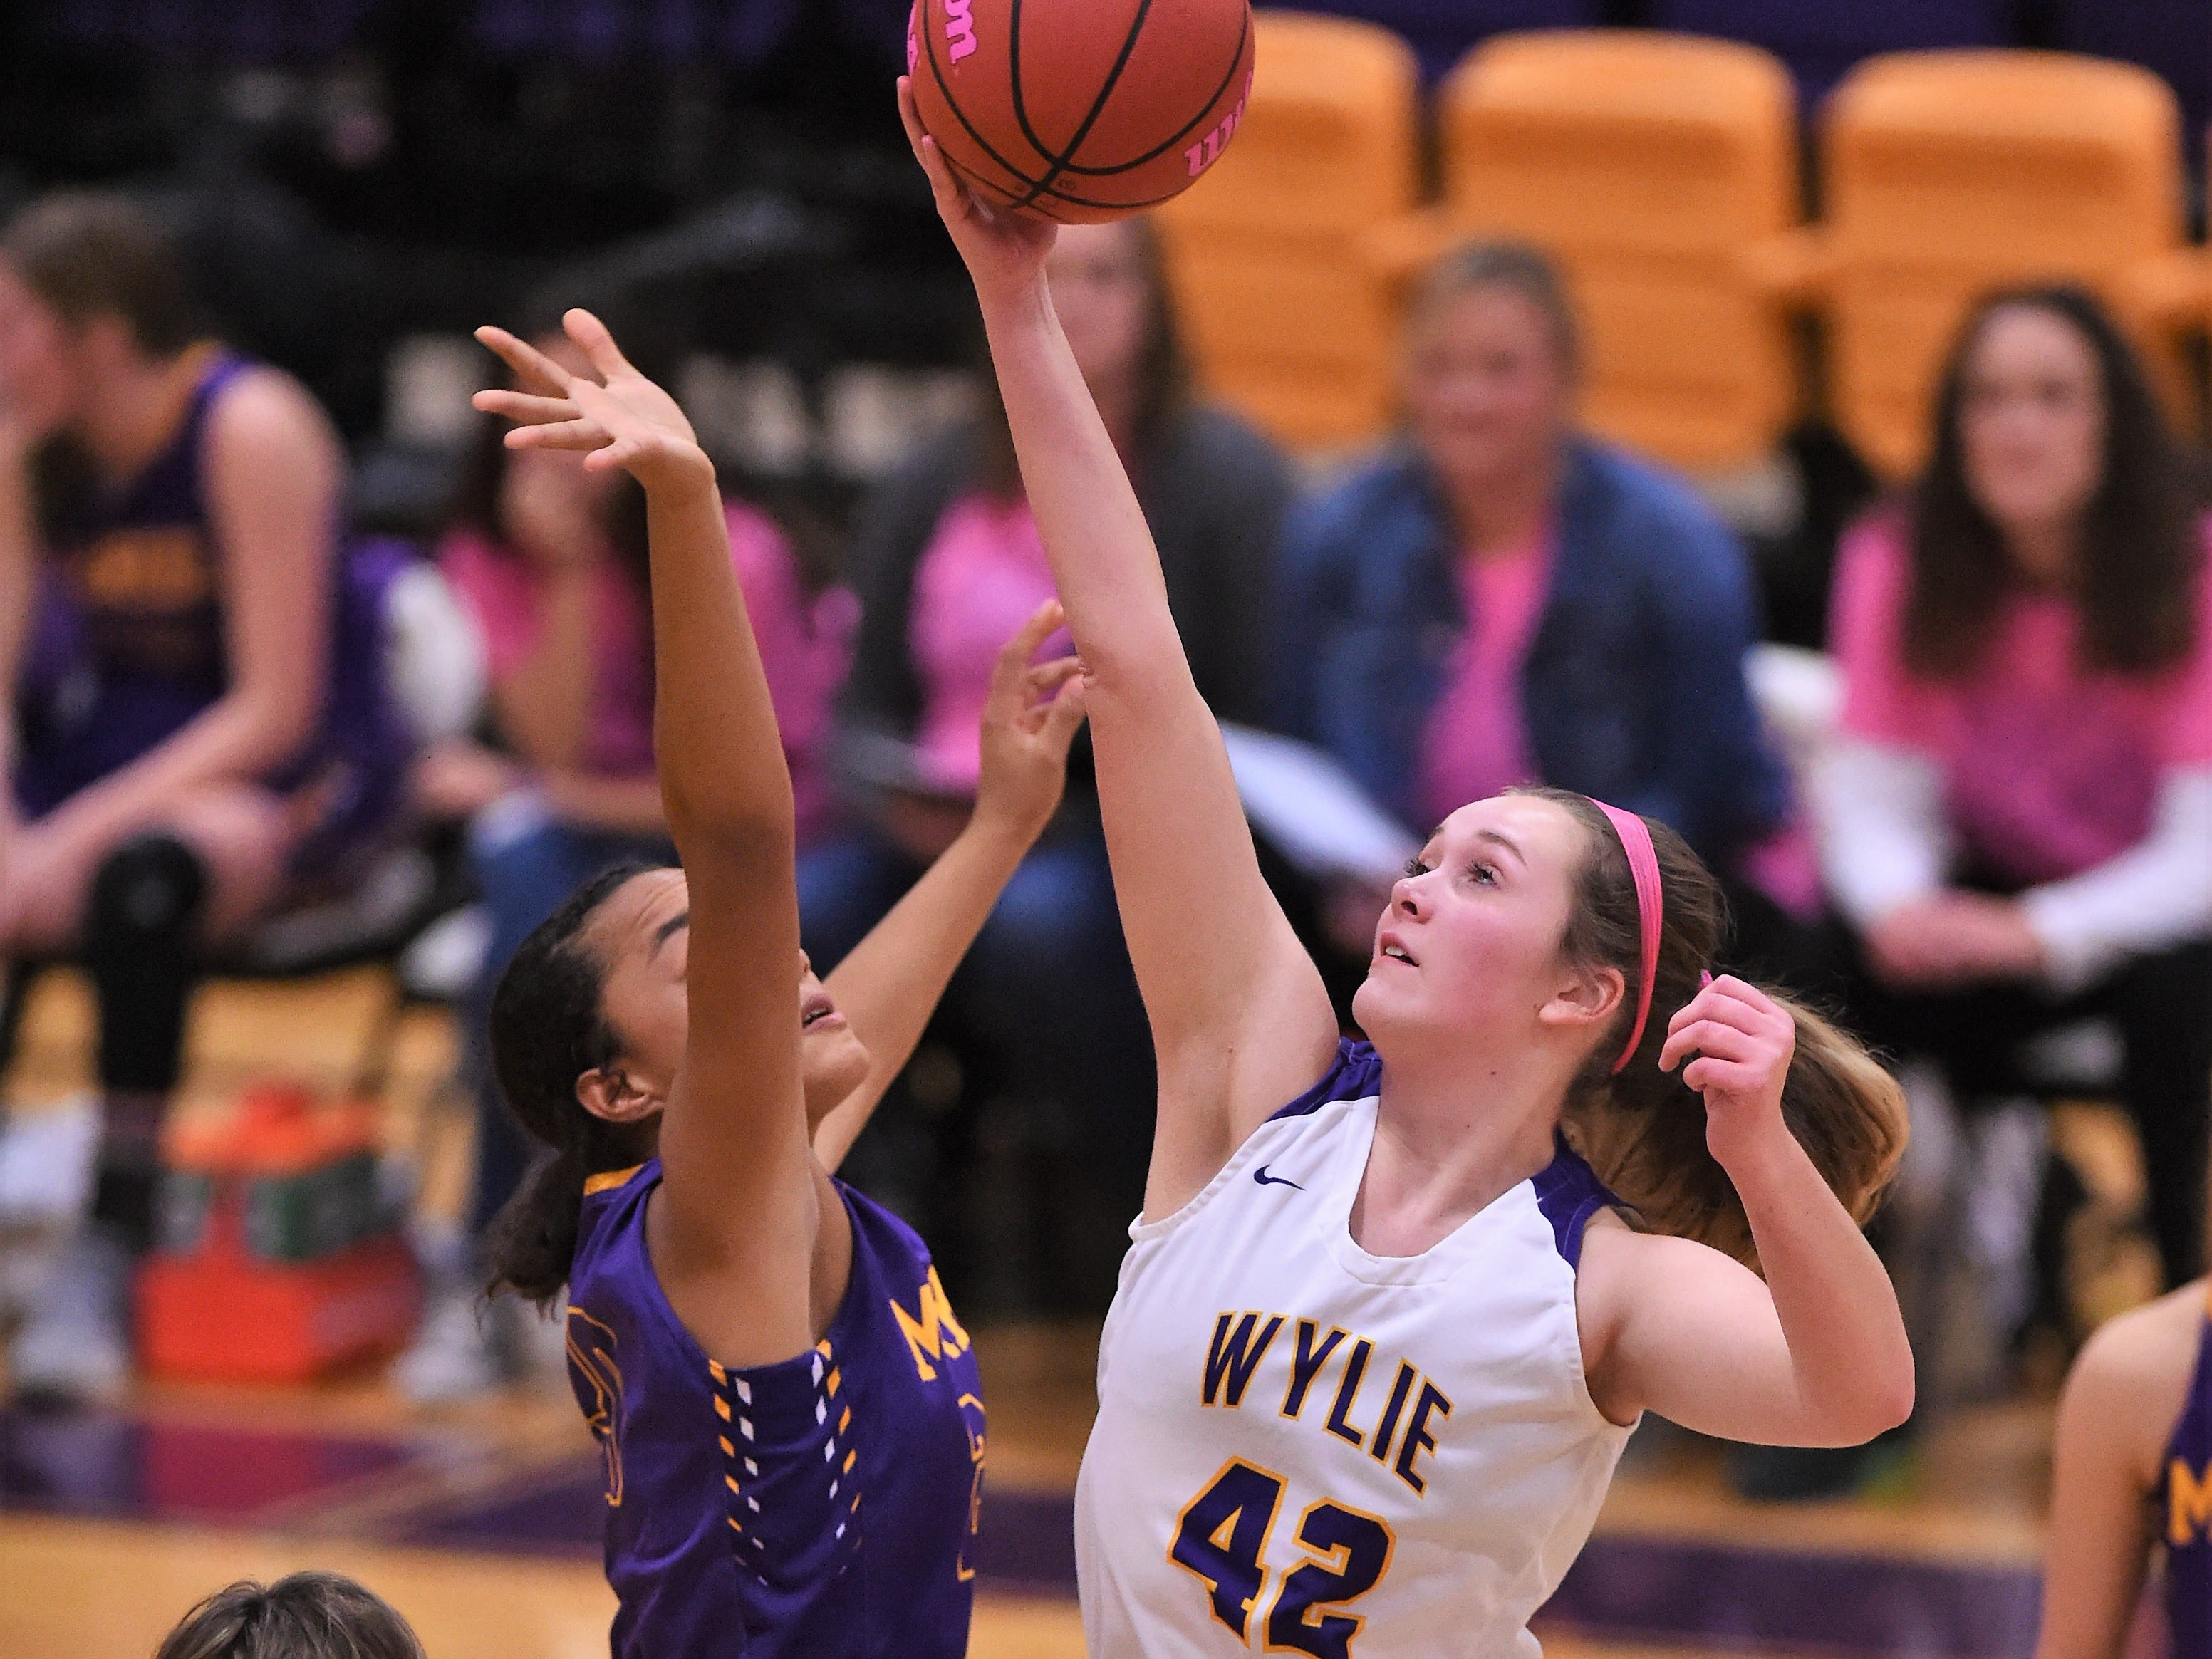 Wylie's Bailey Roberts (42) taps the opening tipoff back against Merkel in the Coaches vs. Cancer Pink Out game on Tuesday, Dec. 4, 2018. The Lady Bulldogs won 75-39.